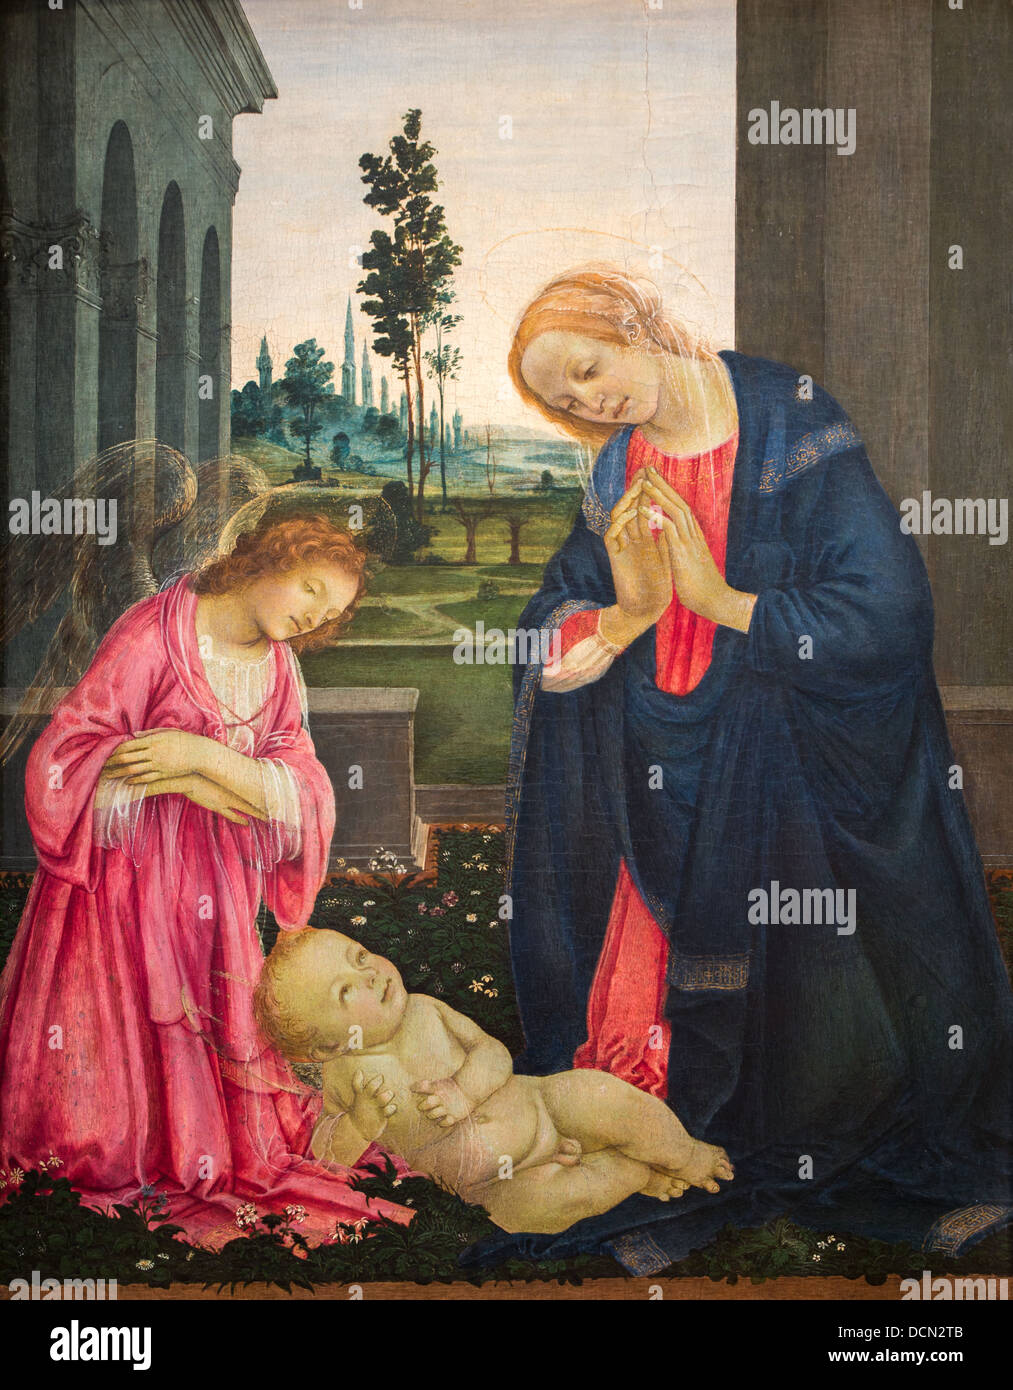 15th century  -  The Adoration of the Child, 1475 - Filippino Lippi Philippe Sauvan-Magnet / Active Museum - Stock Image